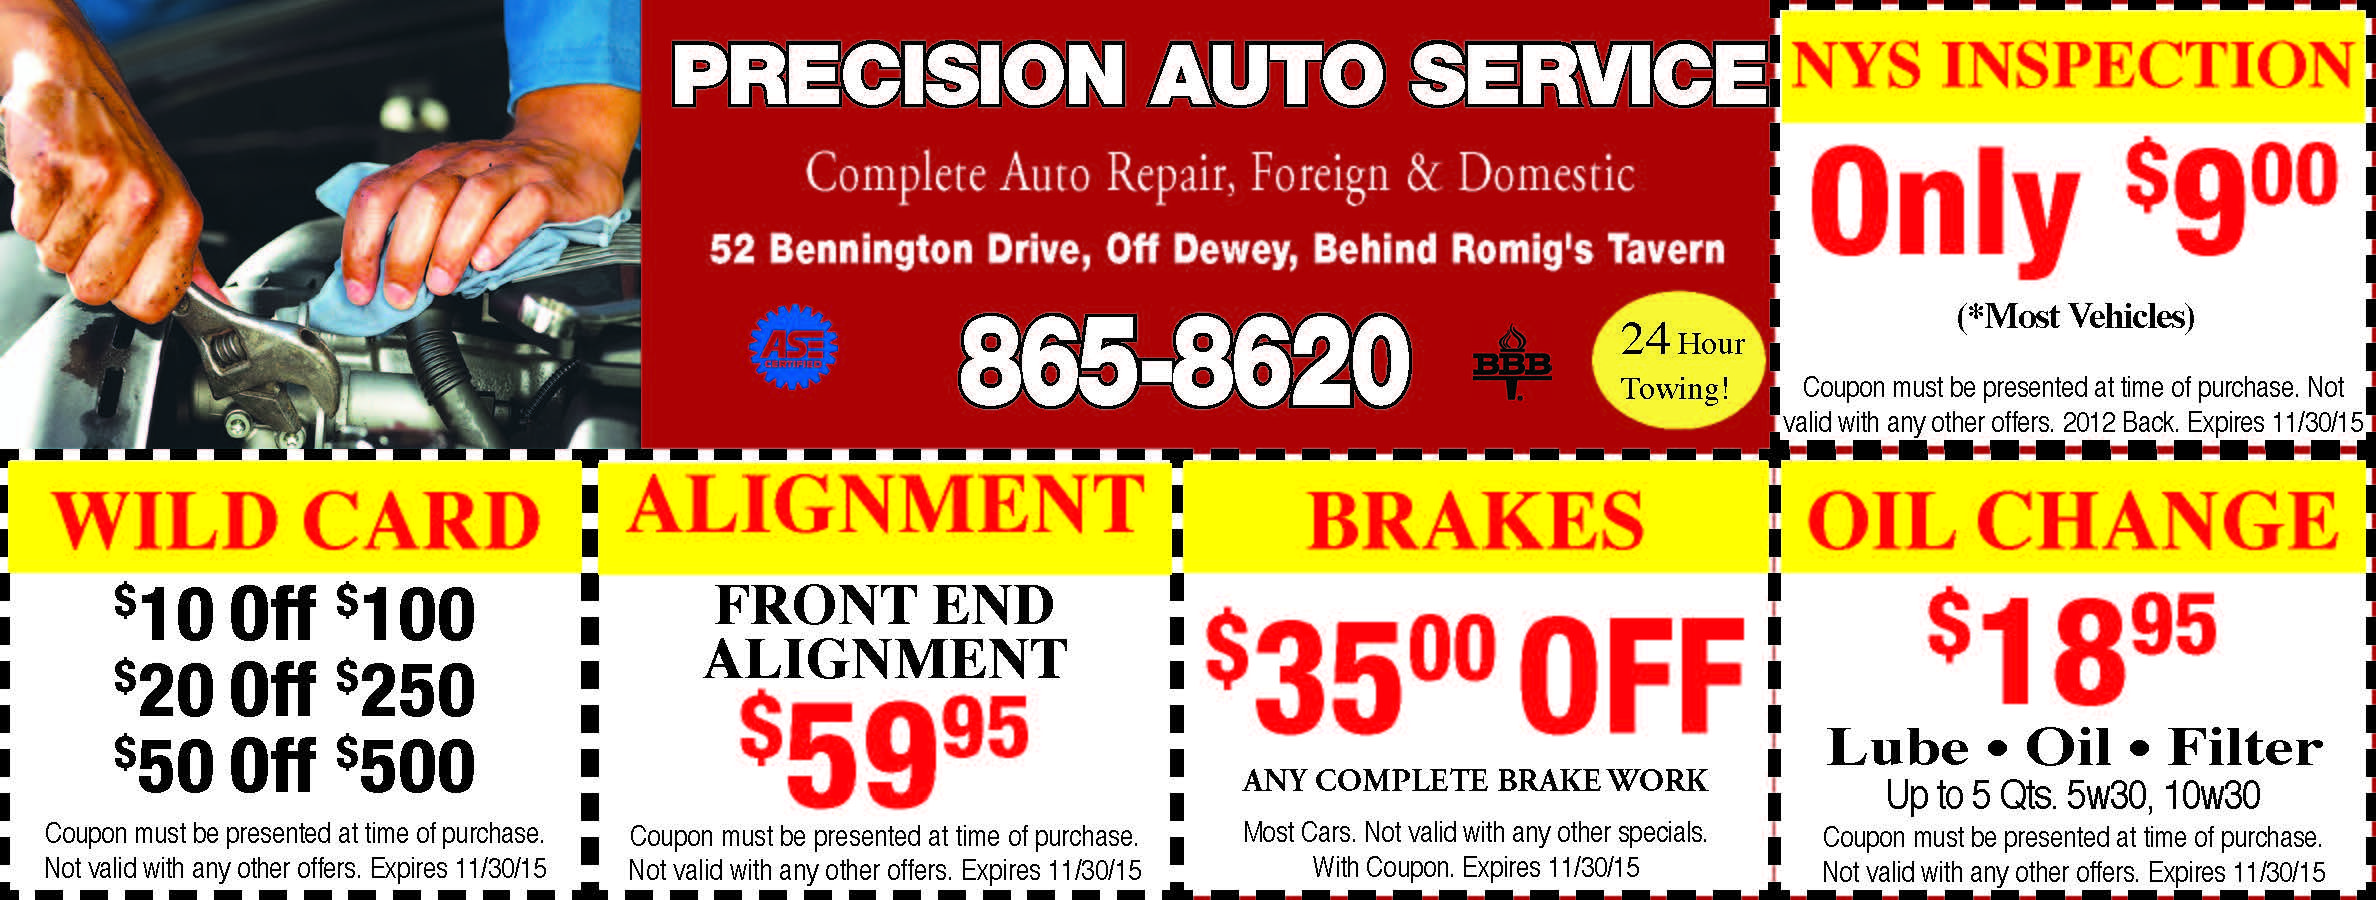 Front End Alignment Coupons >> Precision Auto Service For Savings On Brakes Front End Car